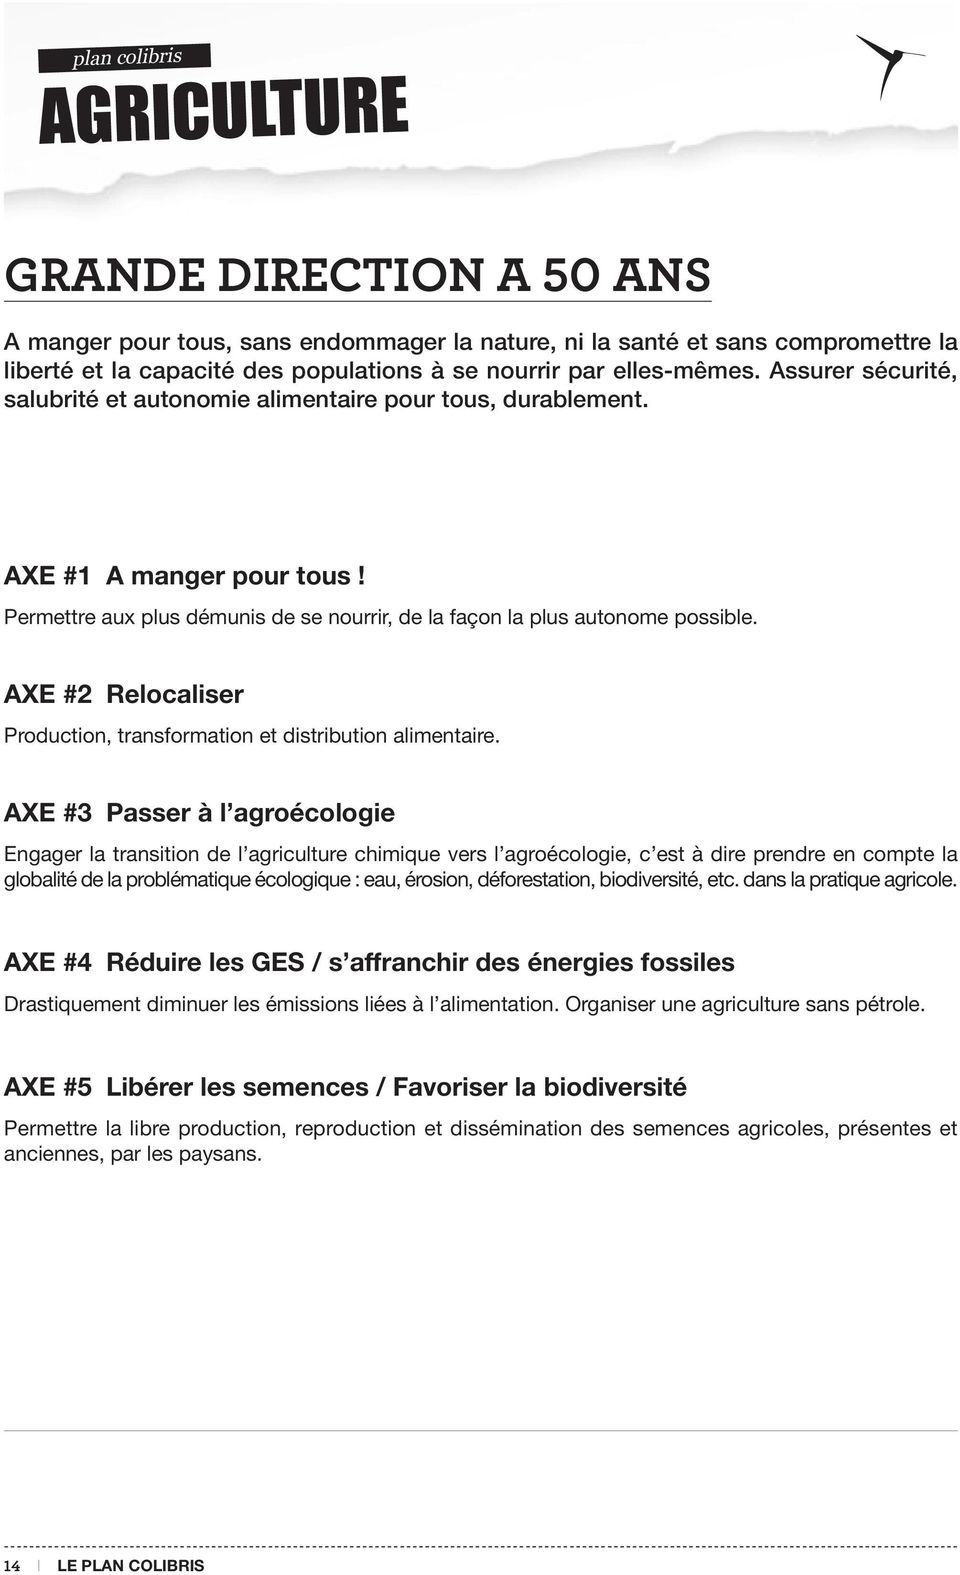 AXE #2 Relocaliser Production, transformation et distribution alimentaire.